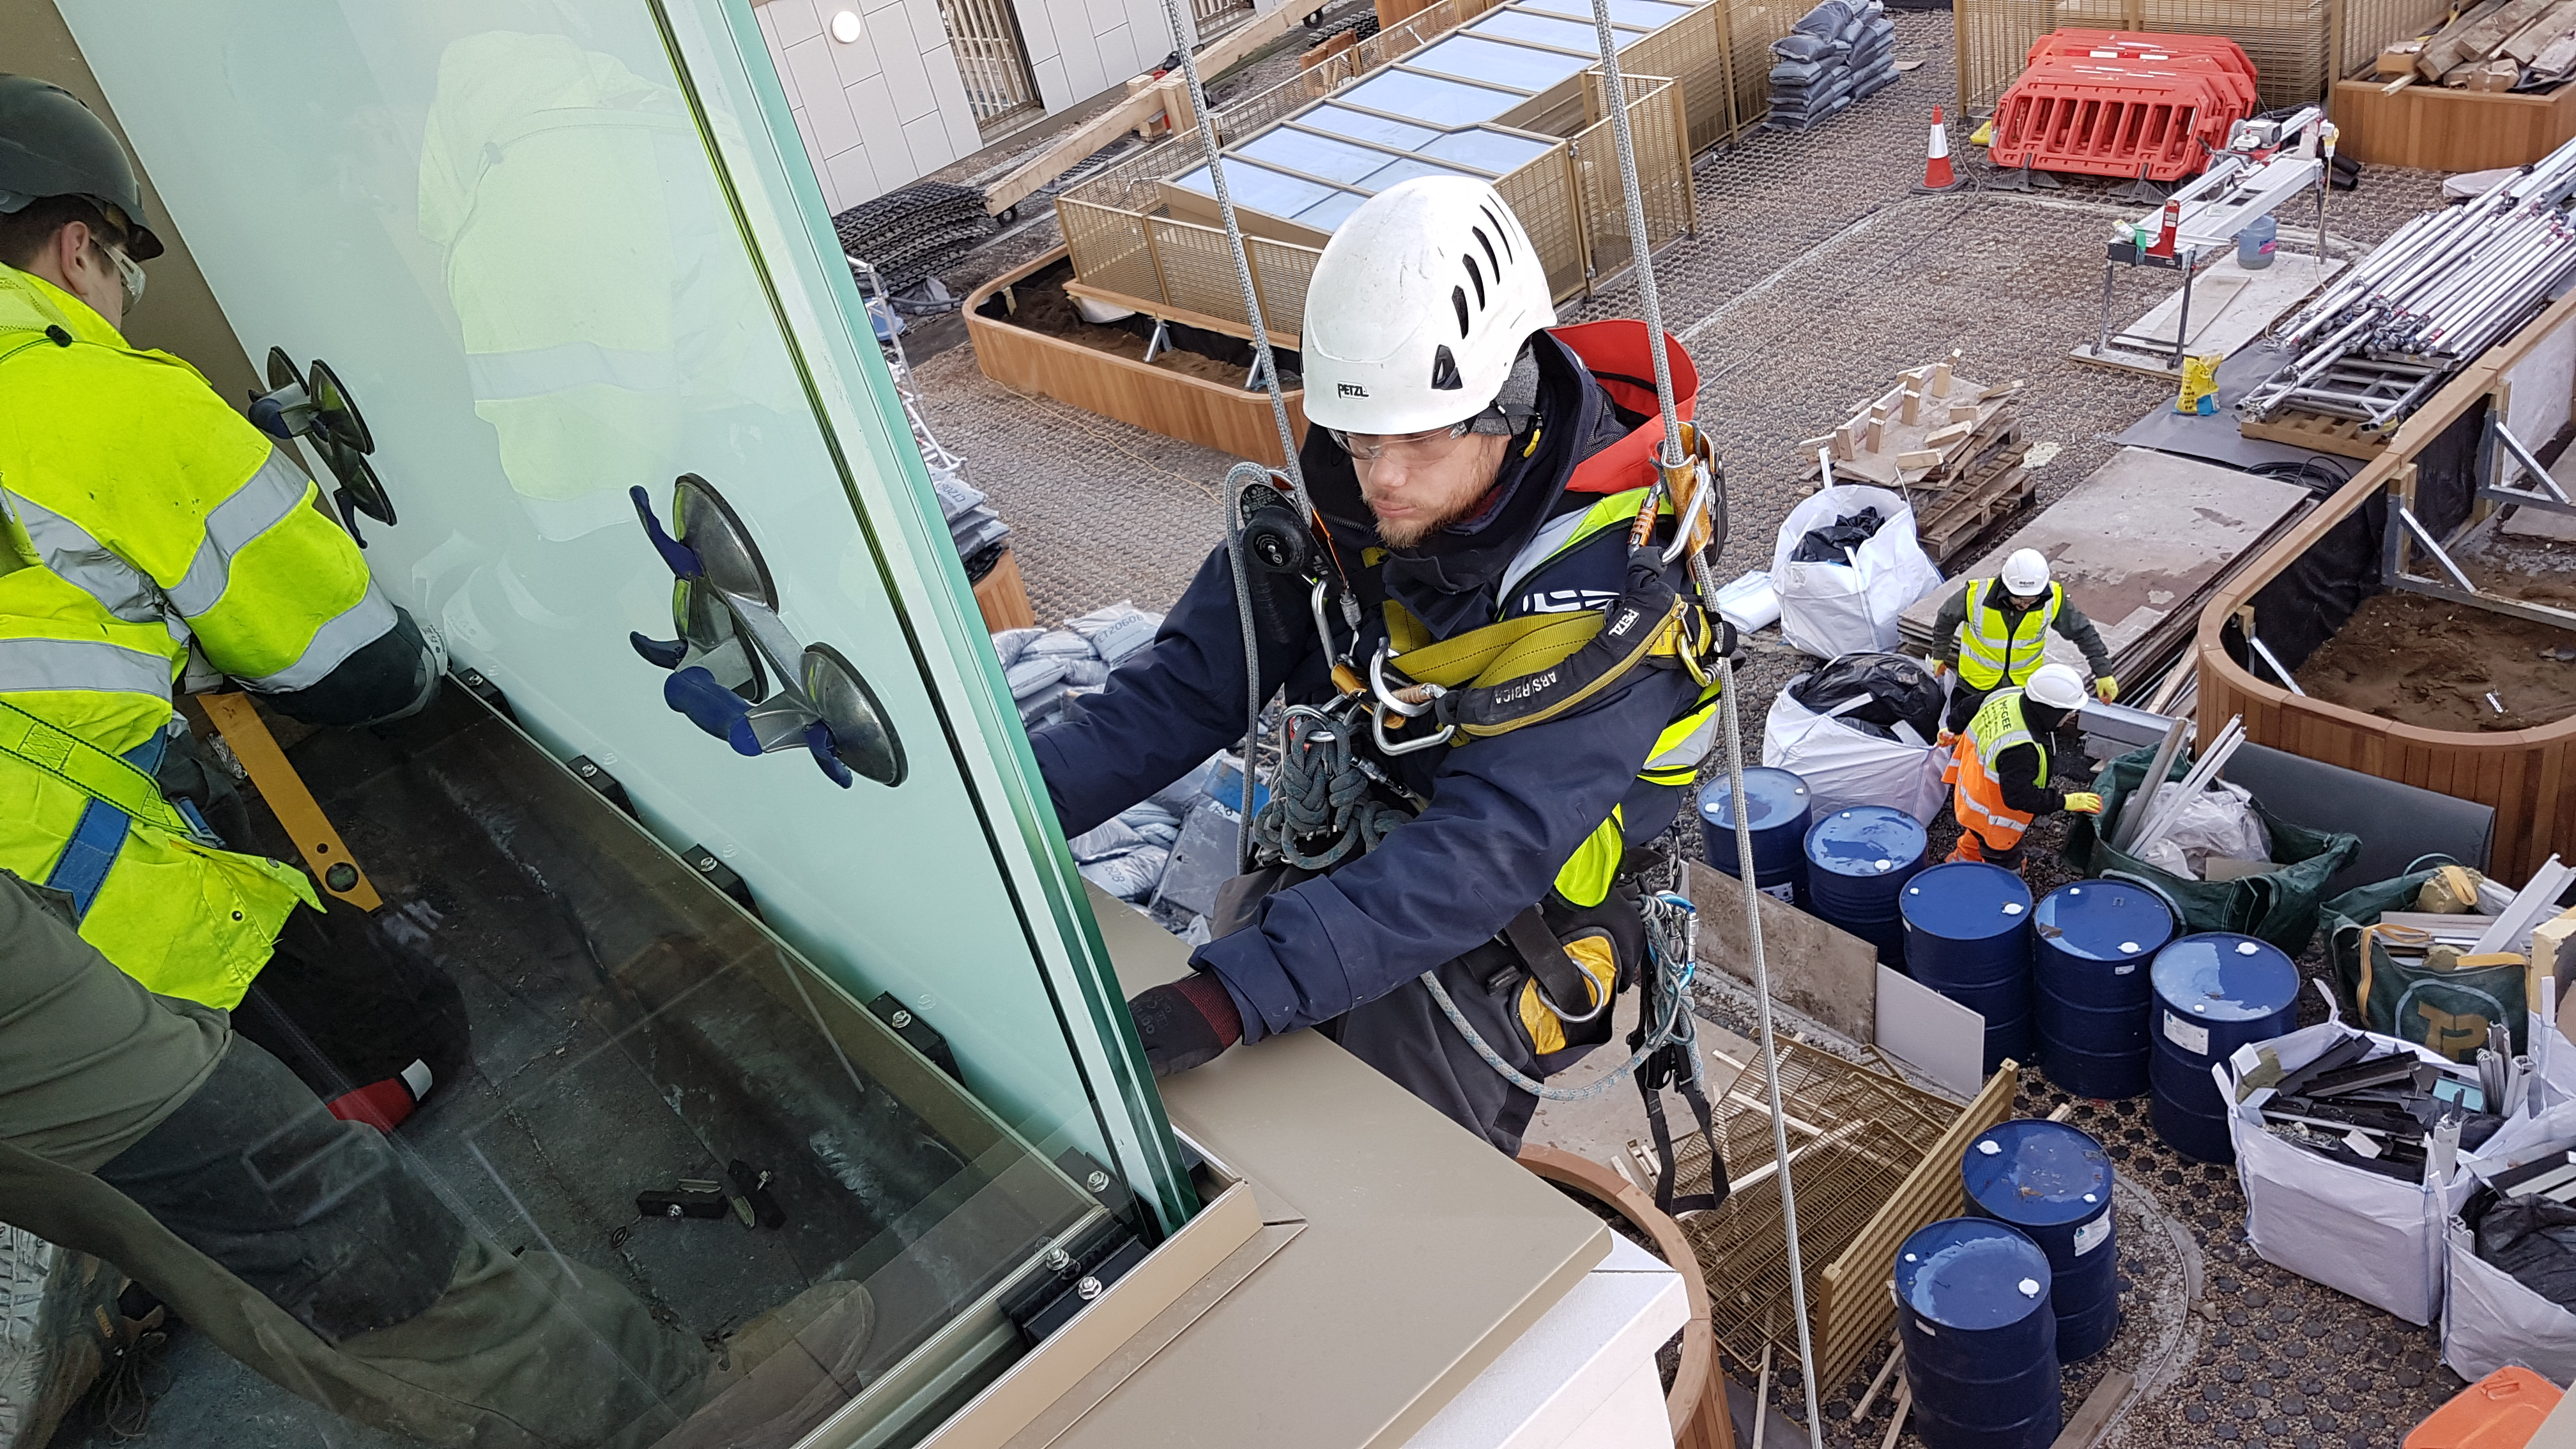 abseiling glass installation